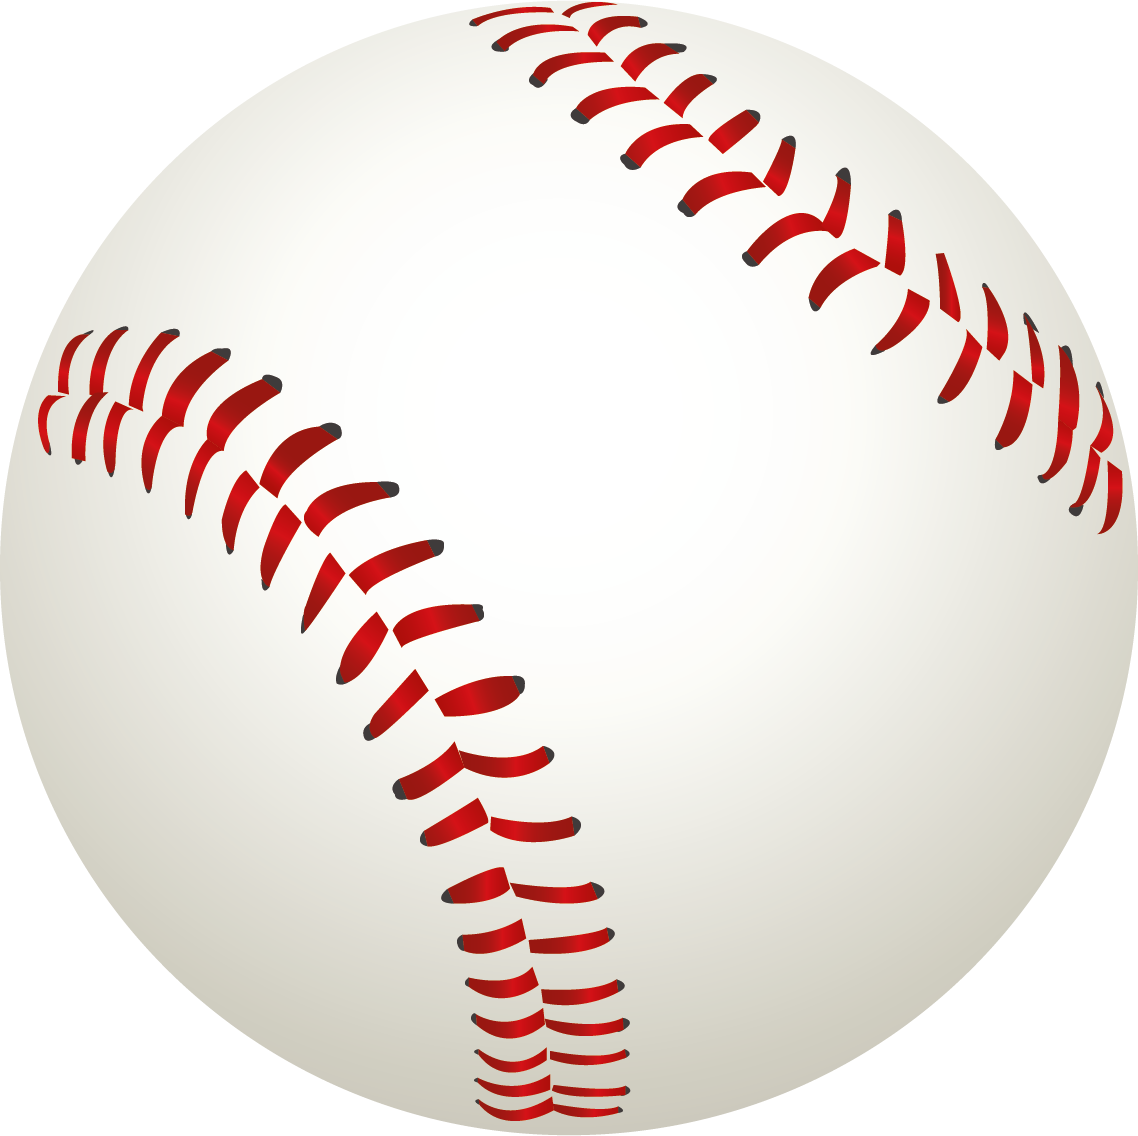 baseball images clip art cliparts co softball clip art black and white softball clipart free download